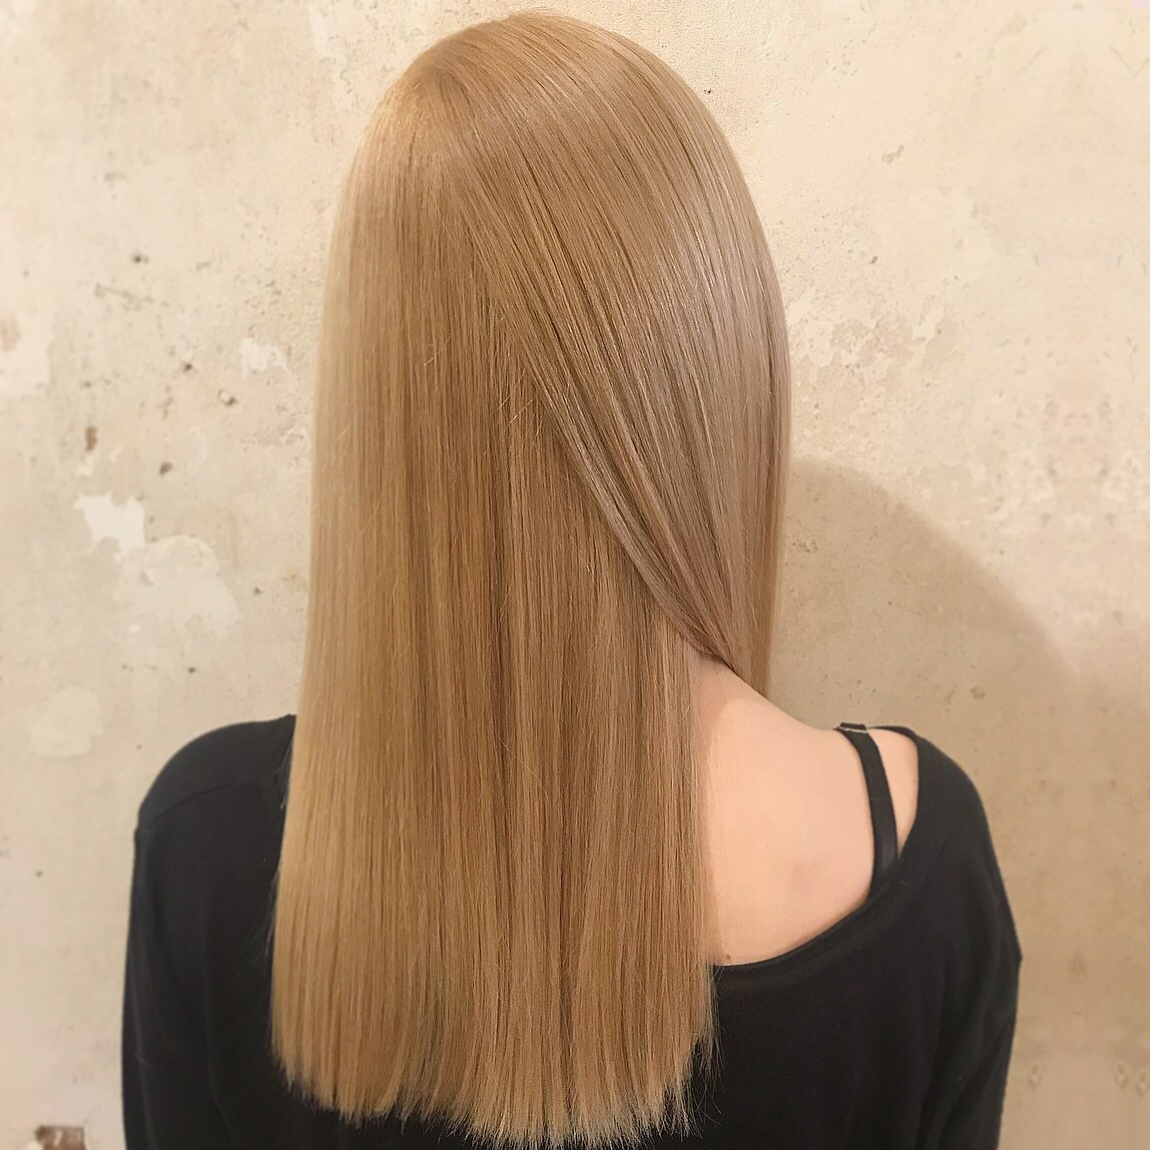 smooth long blonde hair with Keratin treatment at ESHK hairdressers in Clerkenwell, London